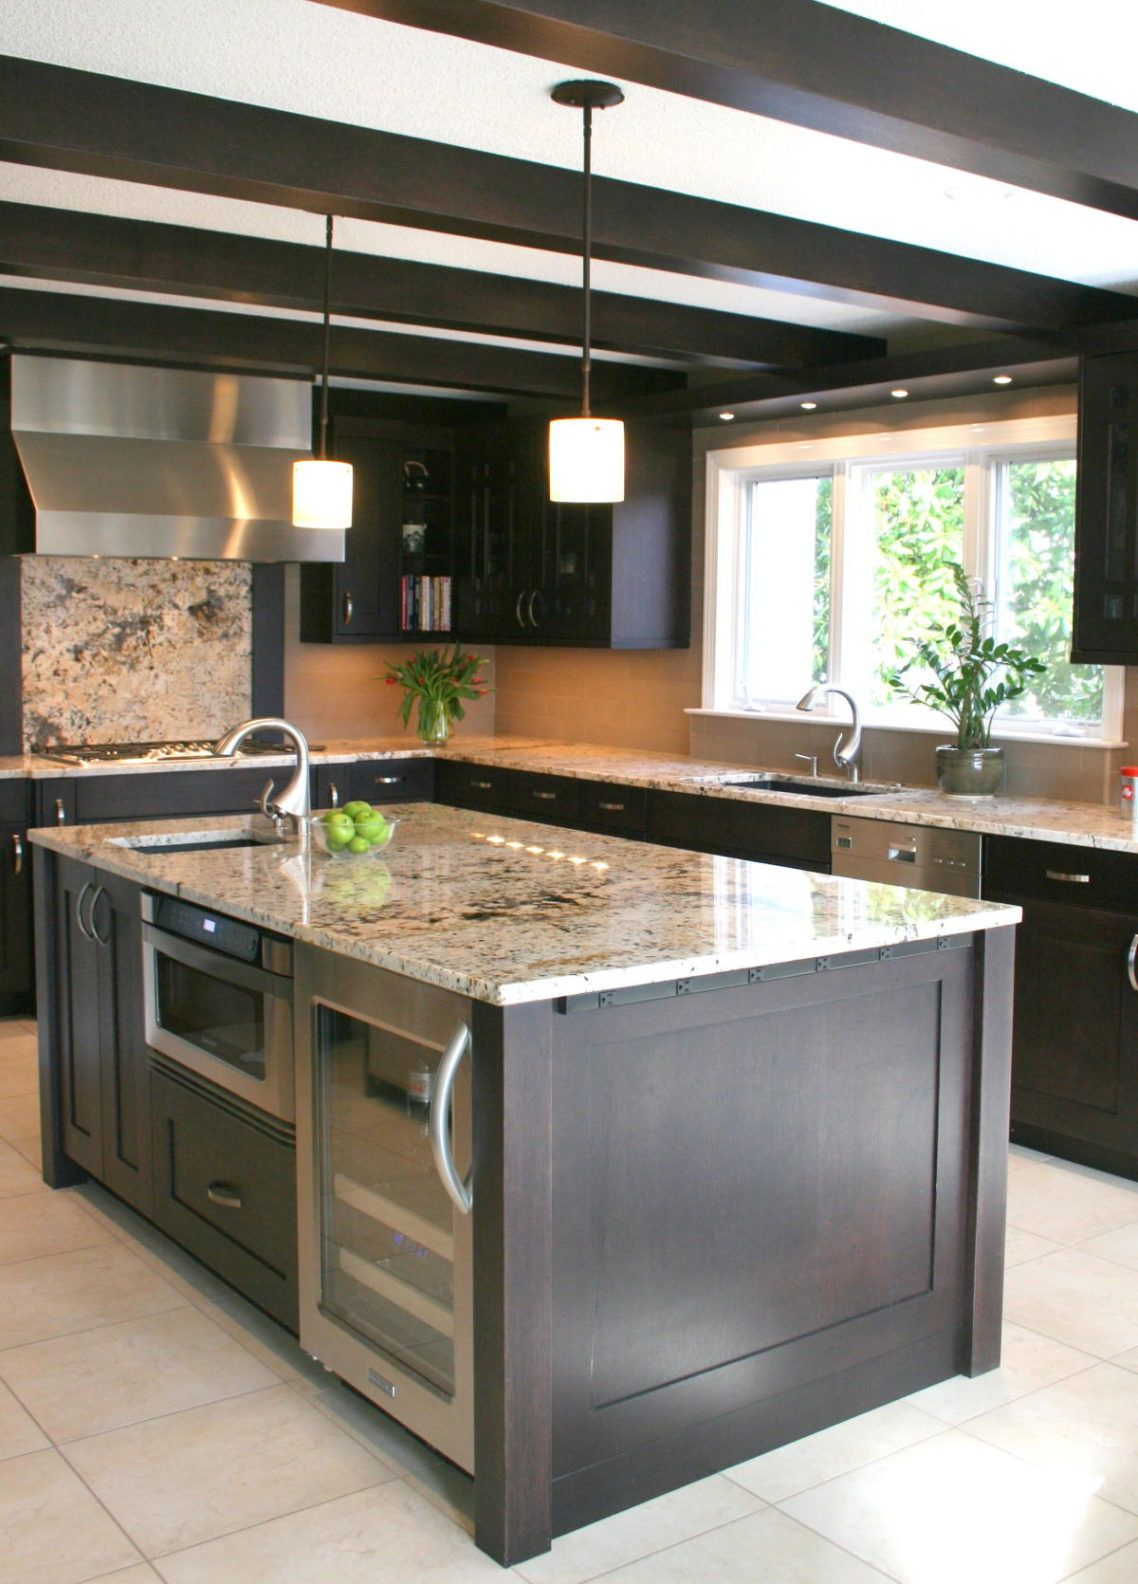 Window under kitchen cabinets  image result for windows under kitchen cabinets  hilton head